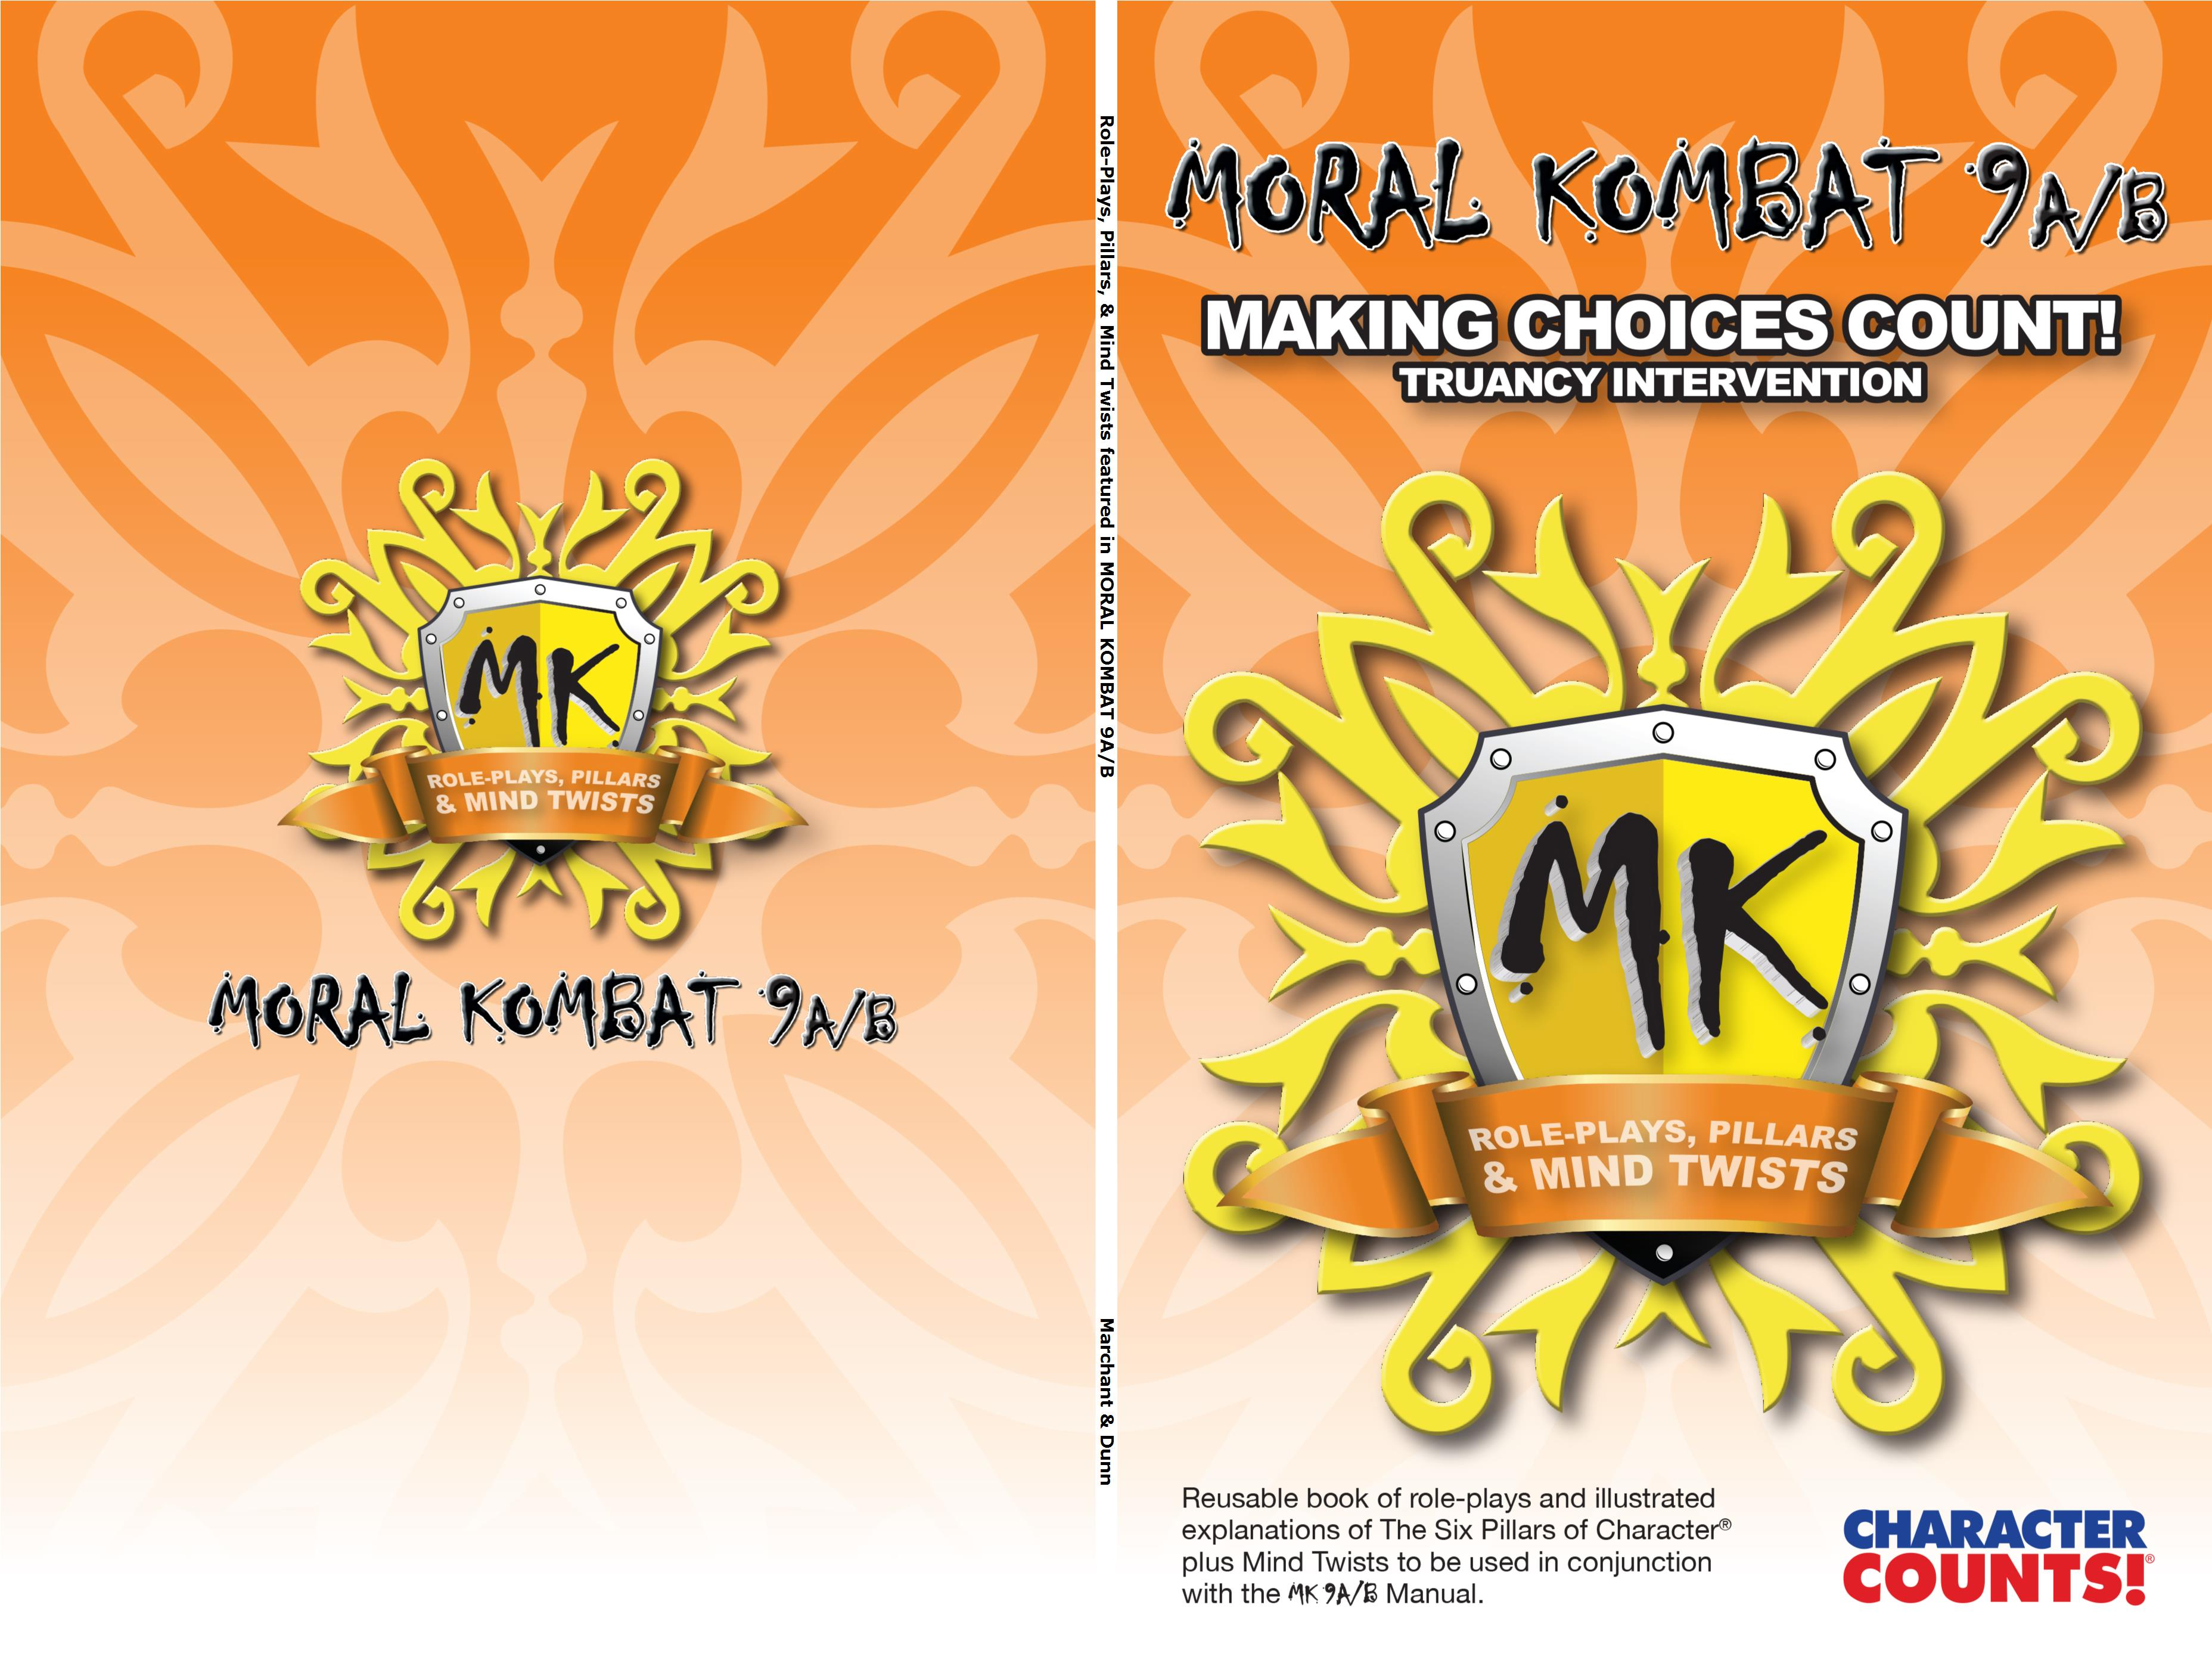 Role-Plays, Pillars, & Mind Twists featured in MORAL KOMBAT 9A/B cover image